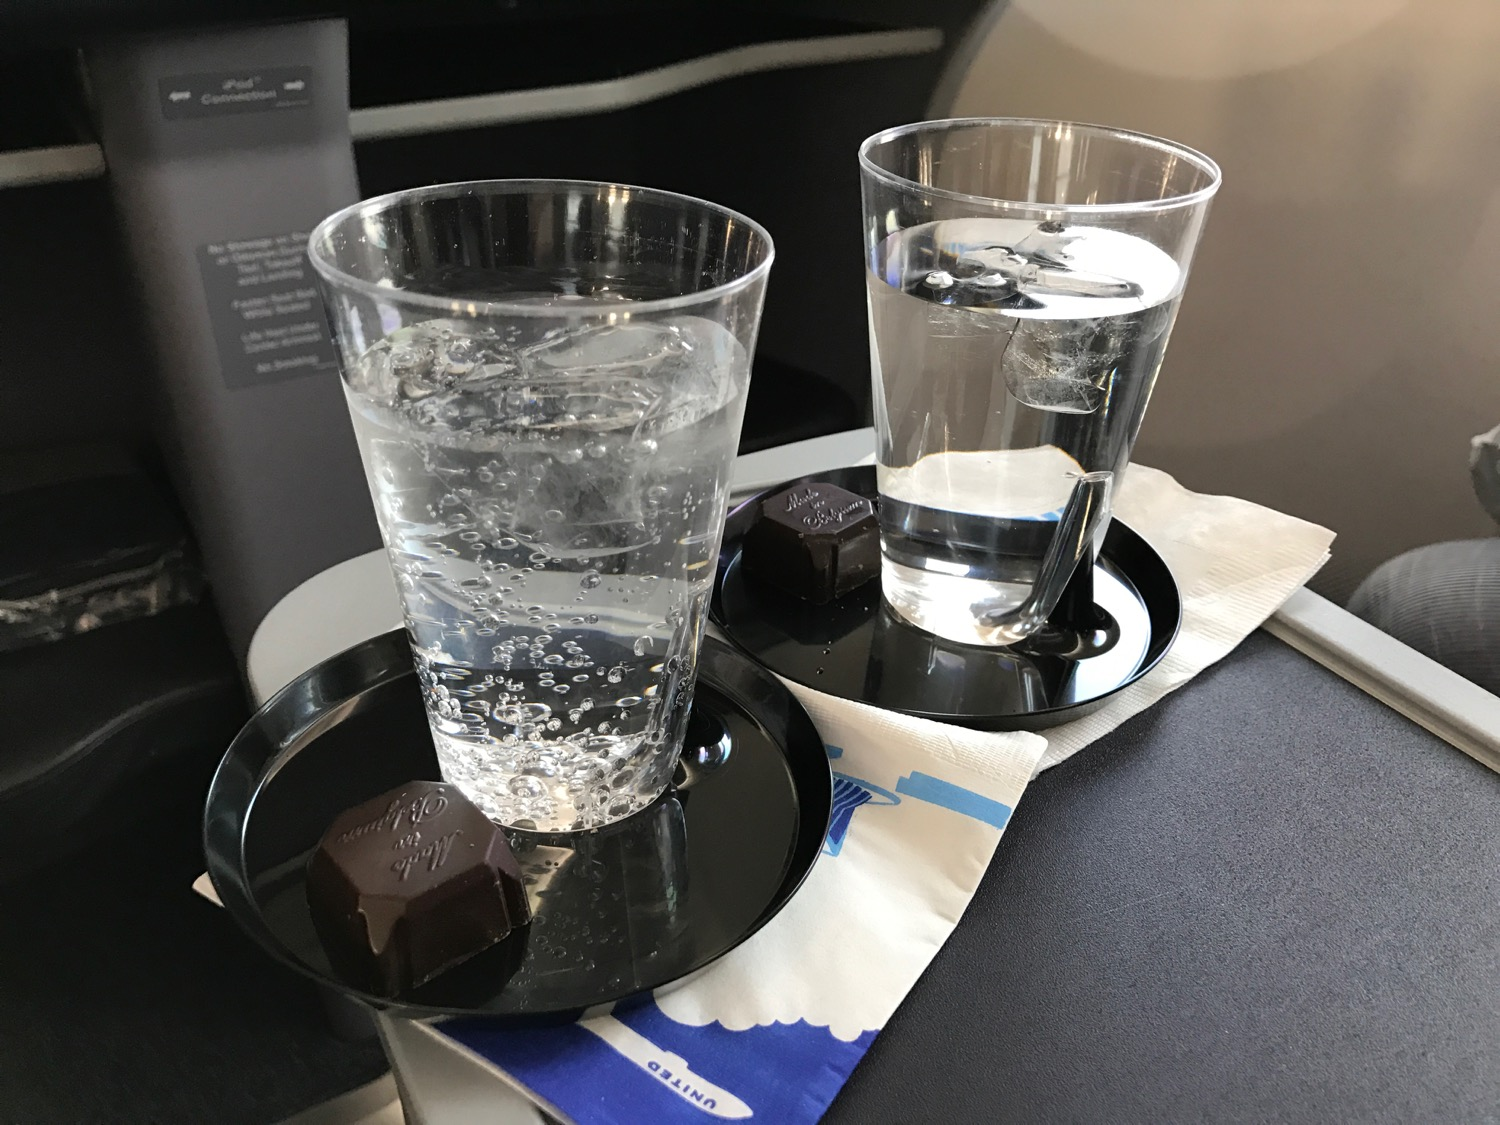 United Polaris 777-200 Review LAX-LHR - 6